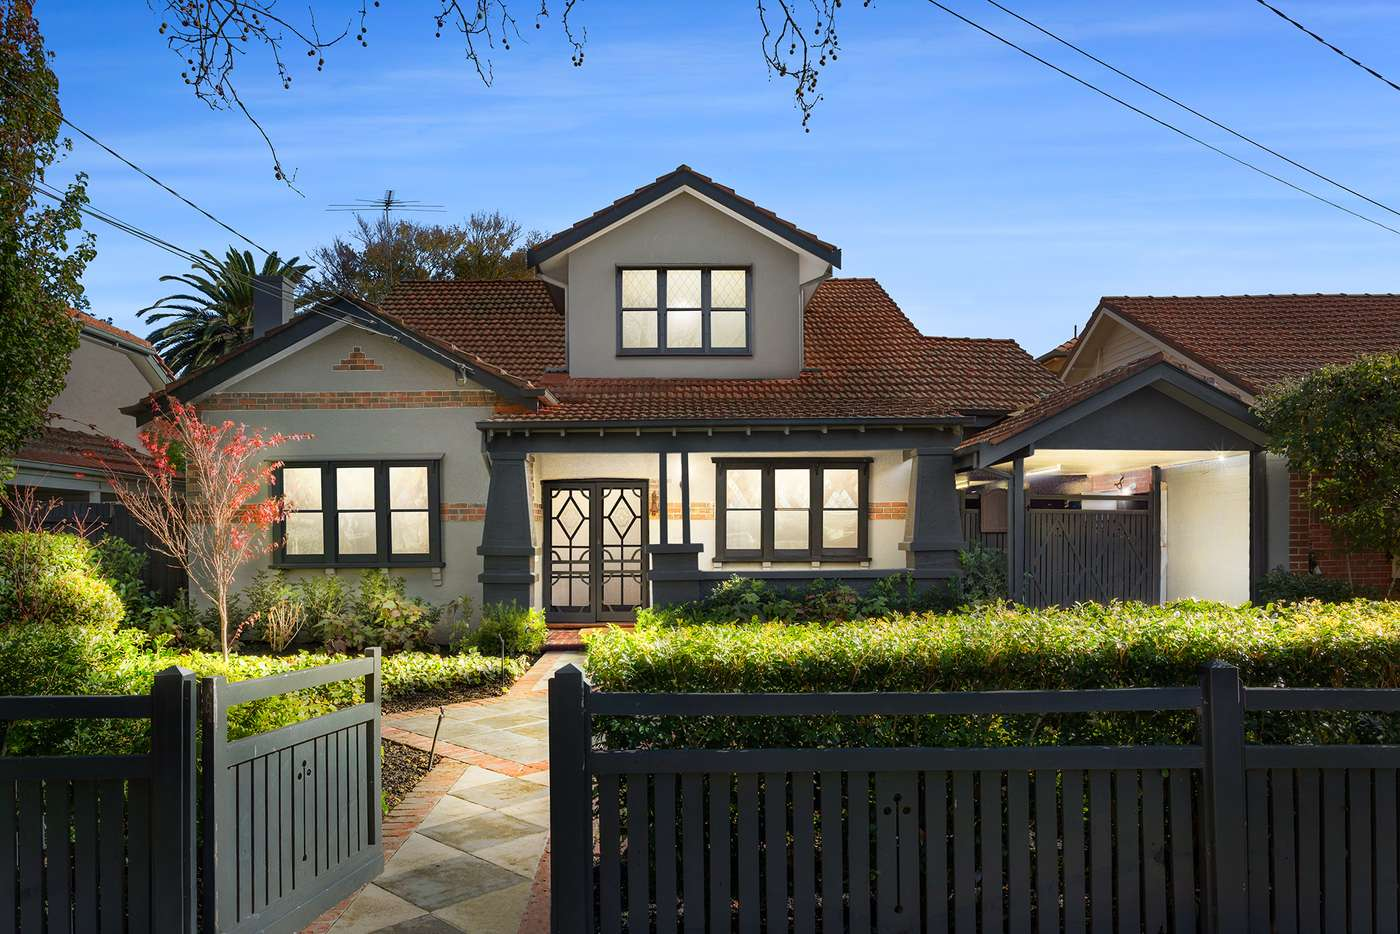 Main view of Homely house listing, 21 Nirvana Avenue, Malvern East VIC 3145